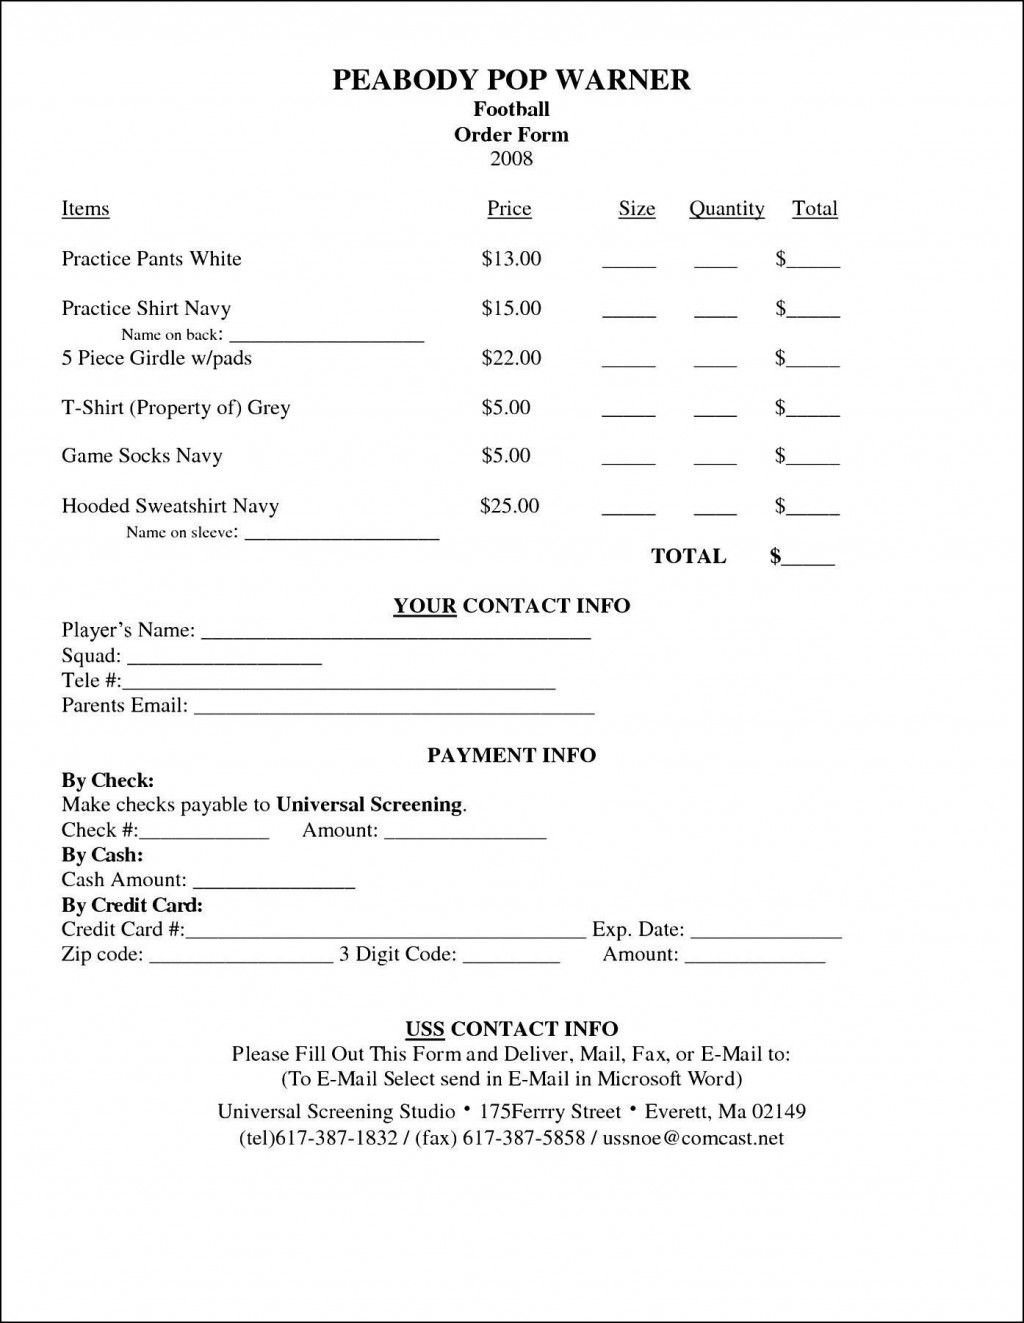 004 Incredible Free Order Form Template Word Picture  T Shirt Job Application RegistrationLarge